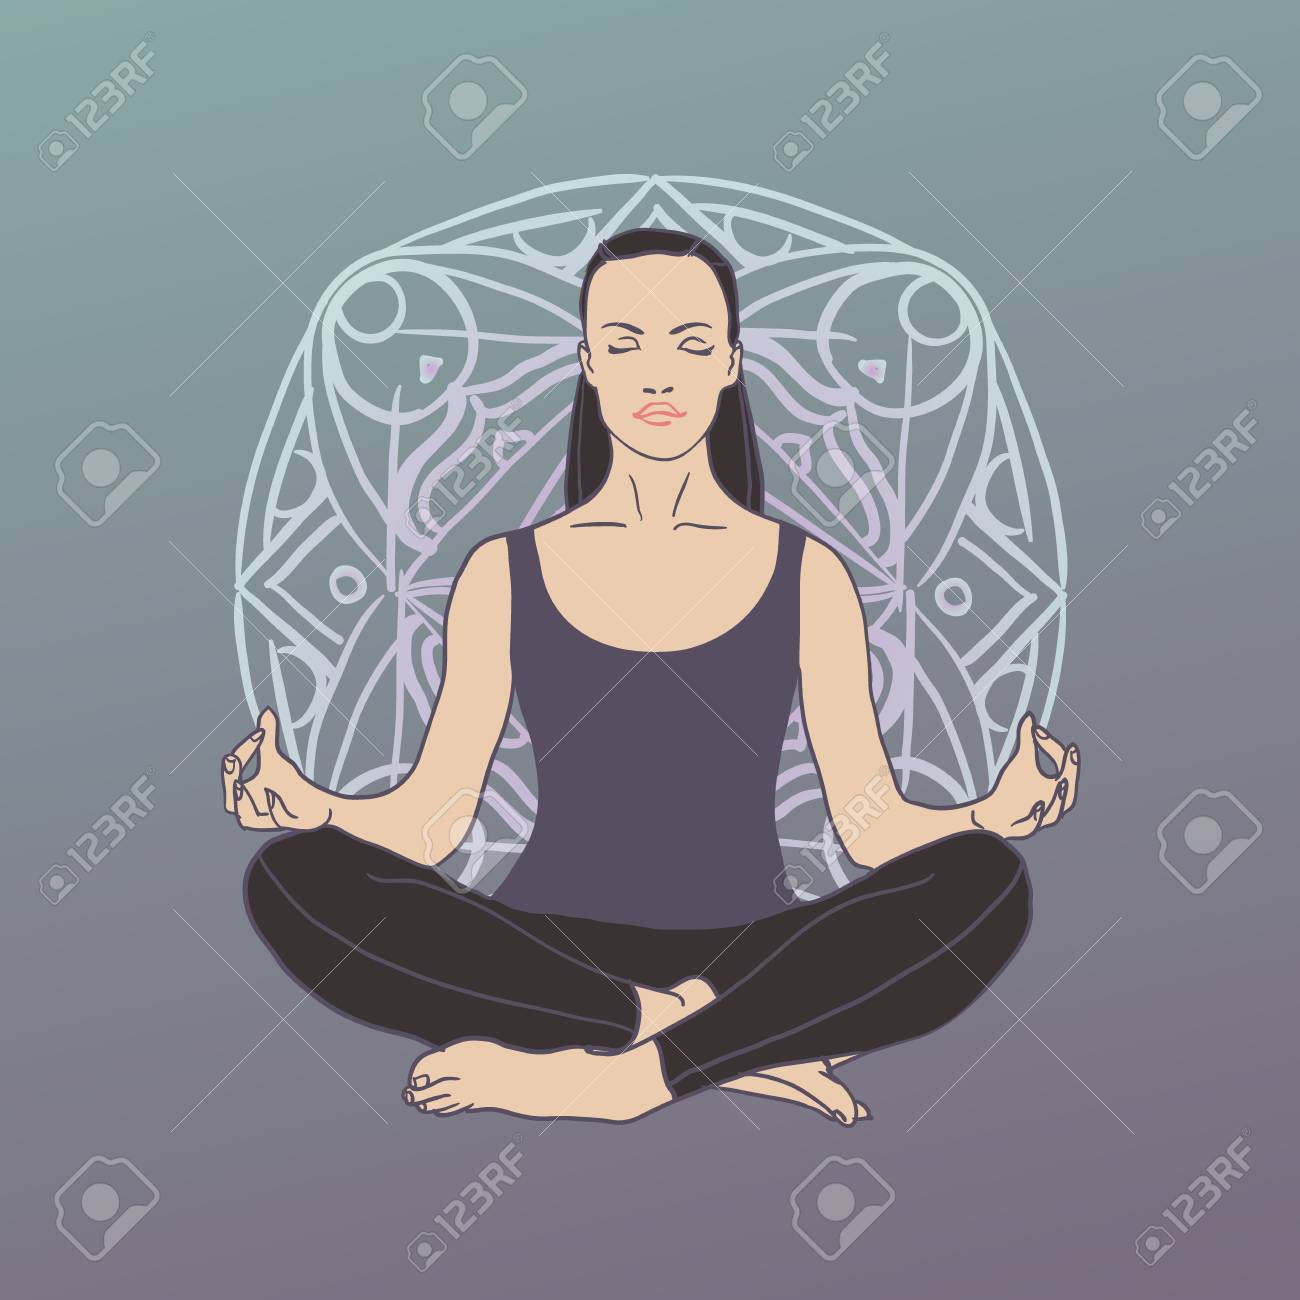 Isolated Woman Silhouette Sitting In Lotus Pose Of Yoga Meditation Royalty Free Cliparts Vectors And Stock Illustration Image 94645708